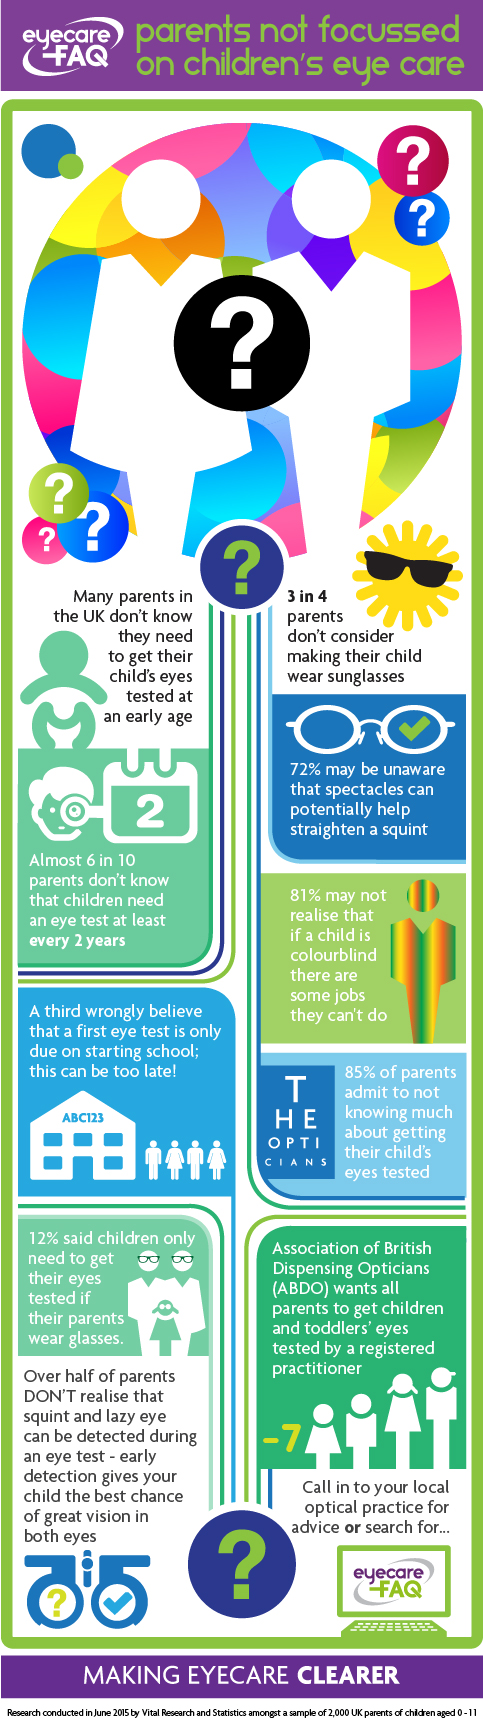 children's eye testing and care